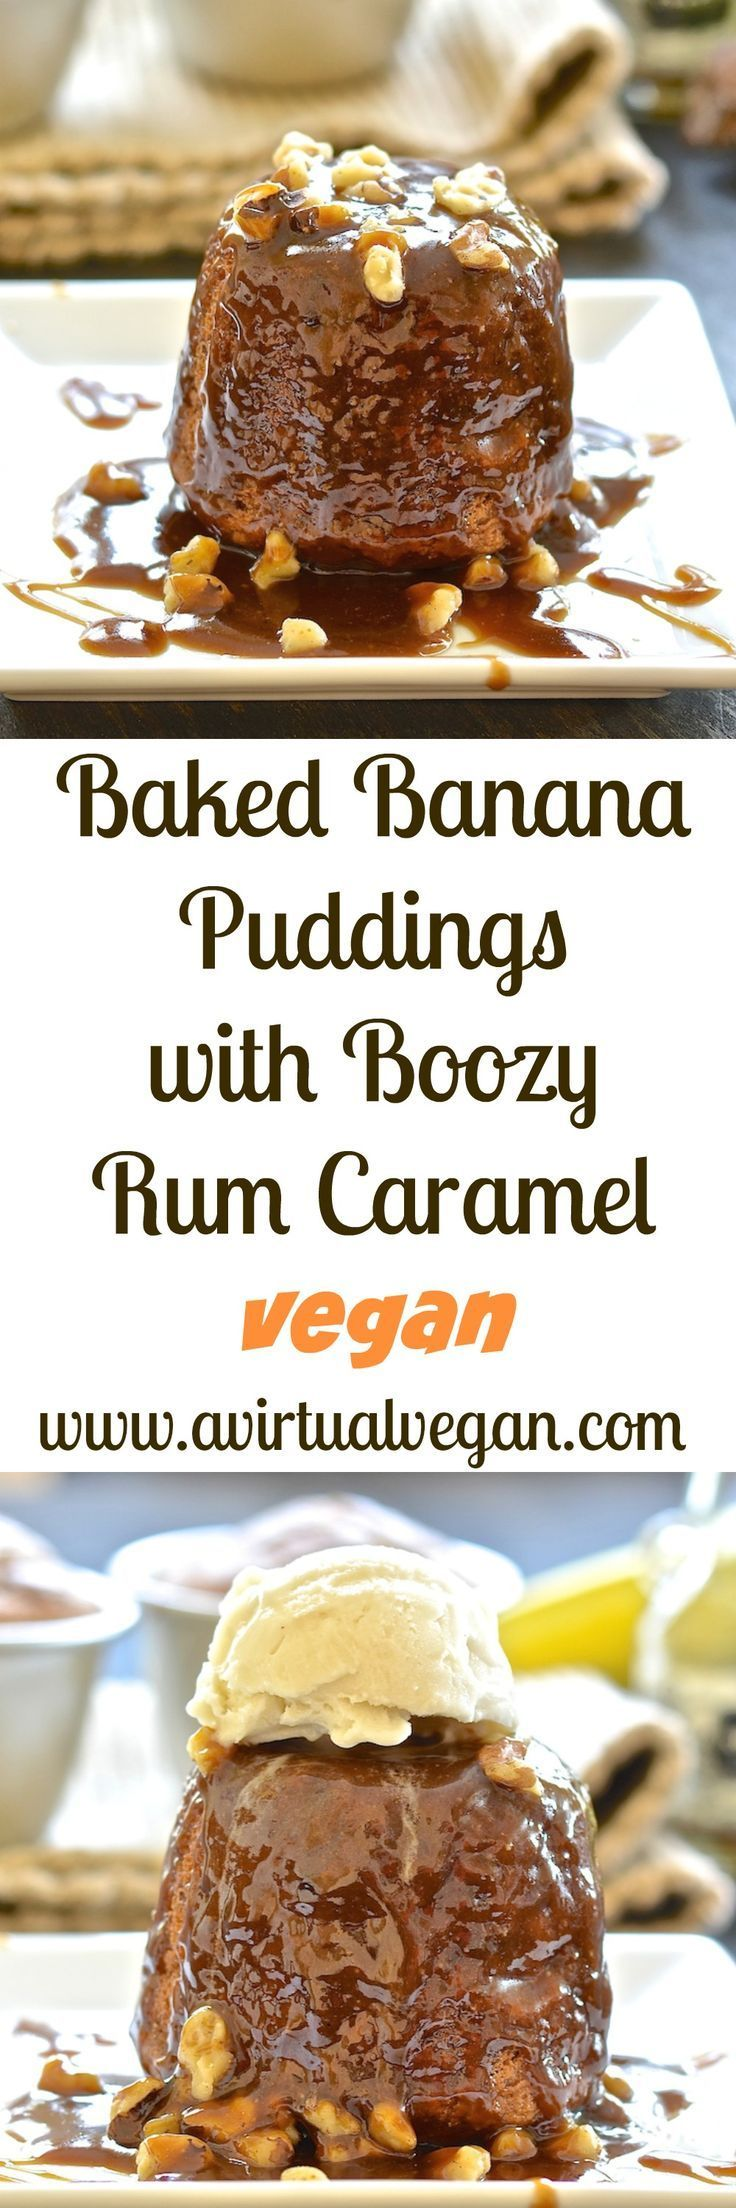 Deliciously moist & flavourful baked banana puddings with a spoon-licking, boozy, rum caramel sauce. Rich, sticky & truly indulgent! #vegan #dairy-free #egg-free #rum #pudding #banana